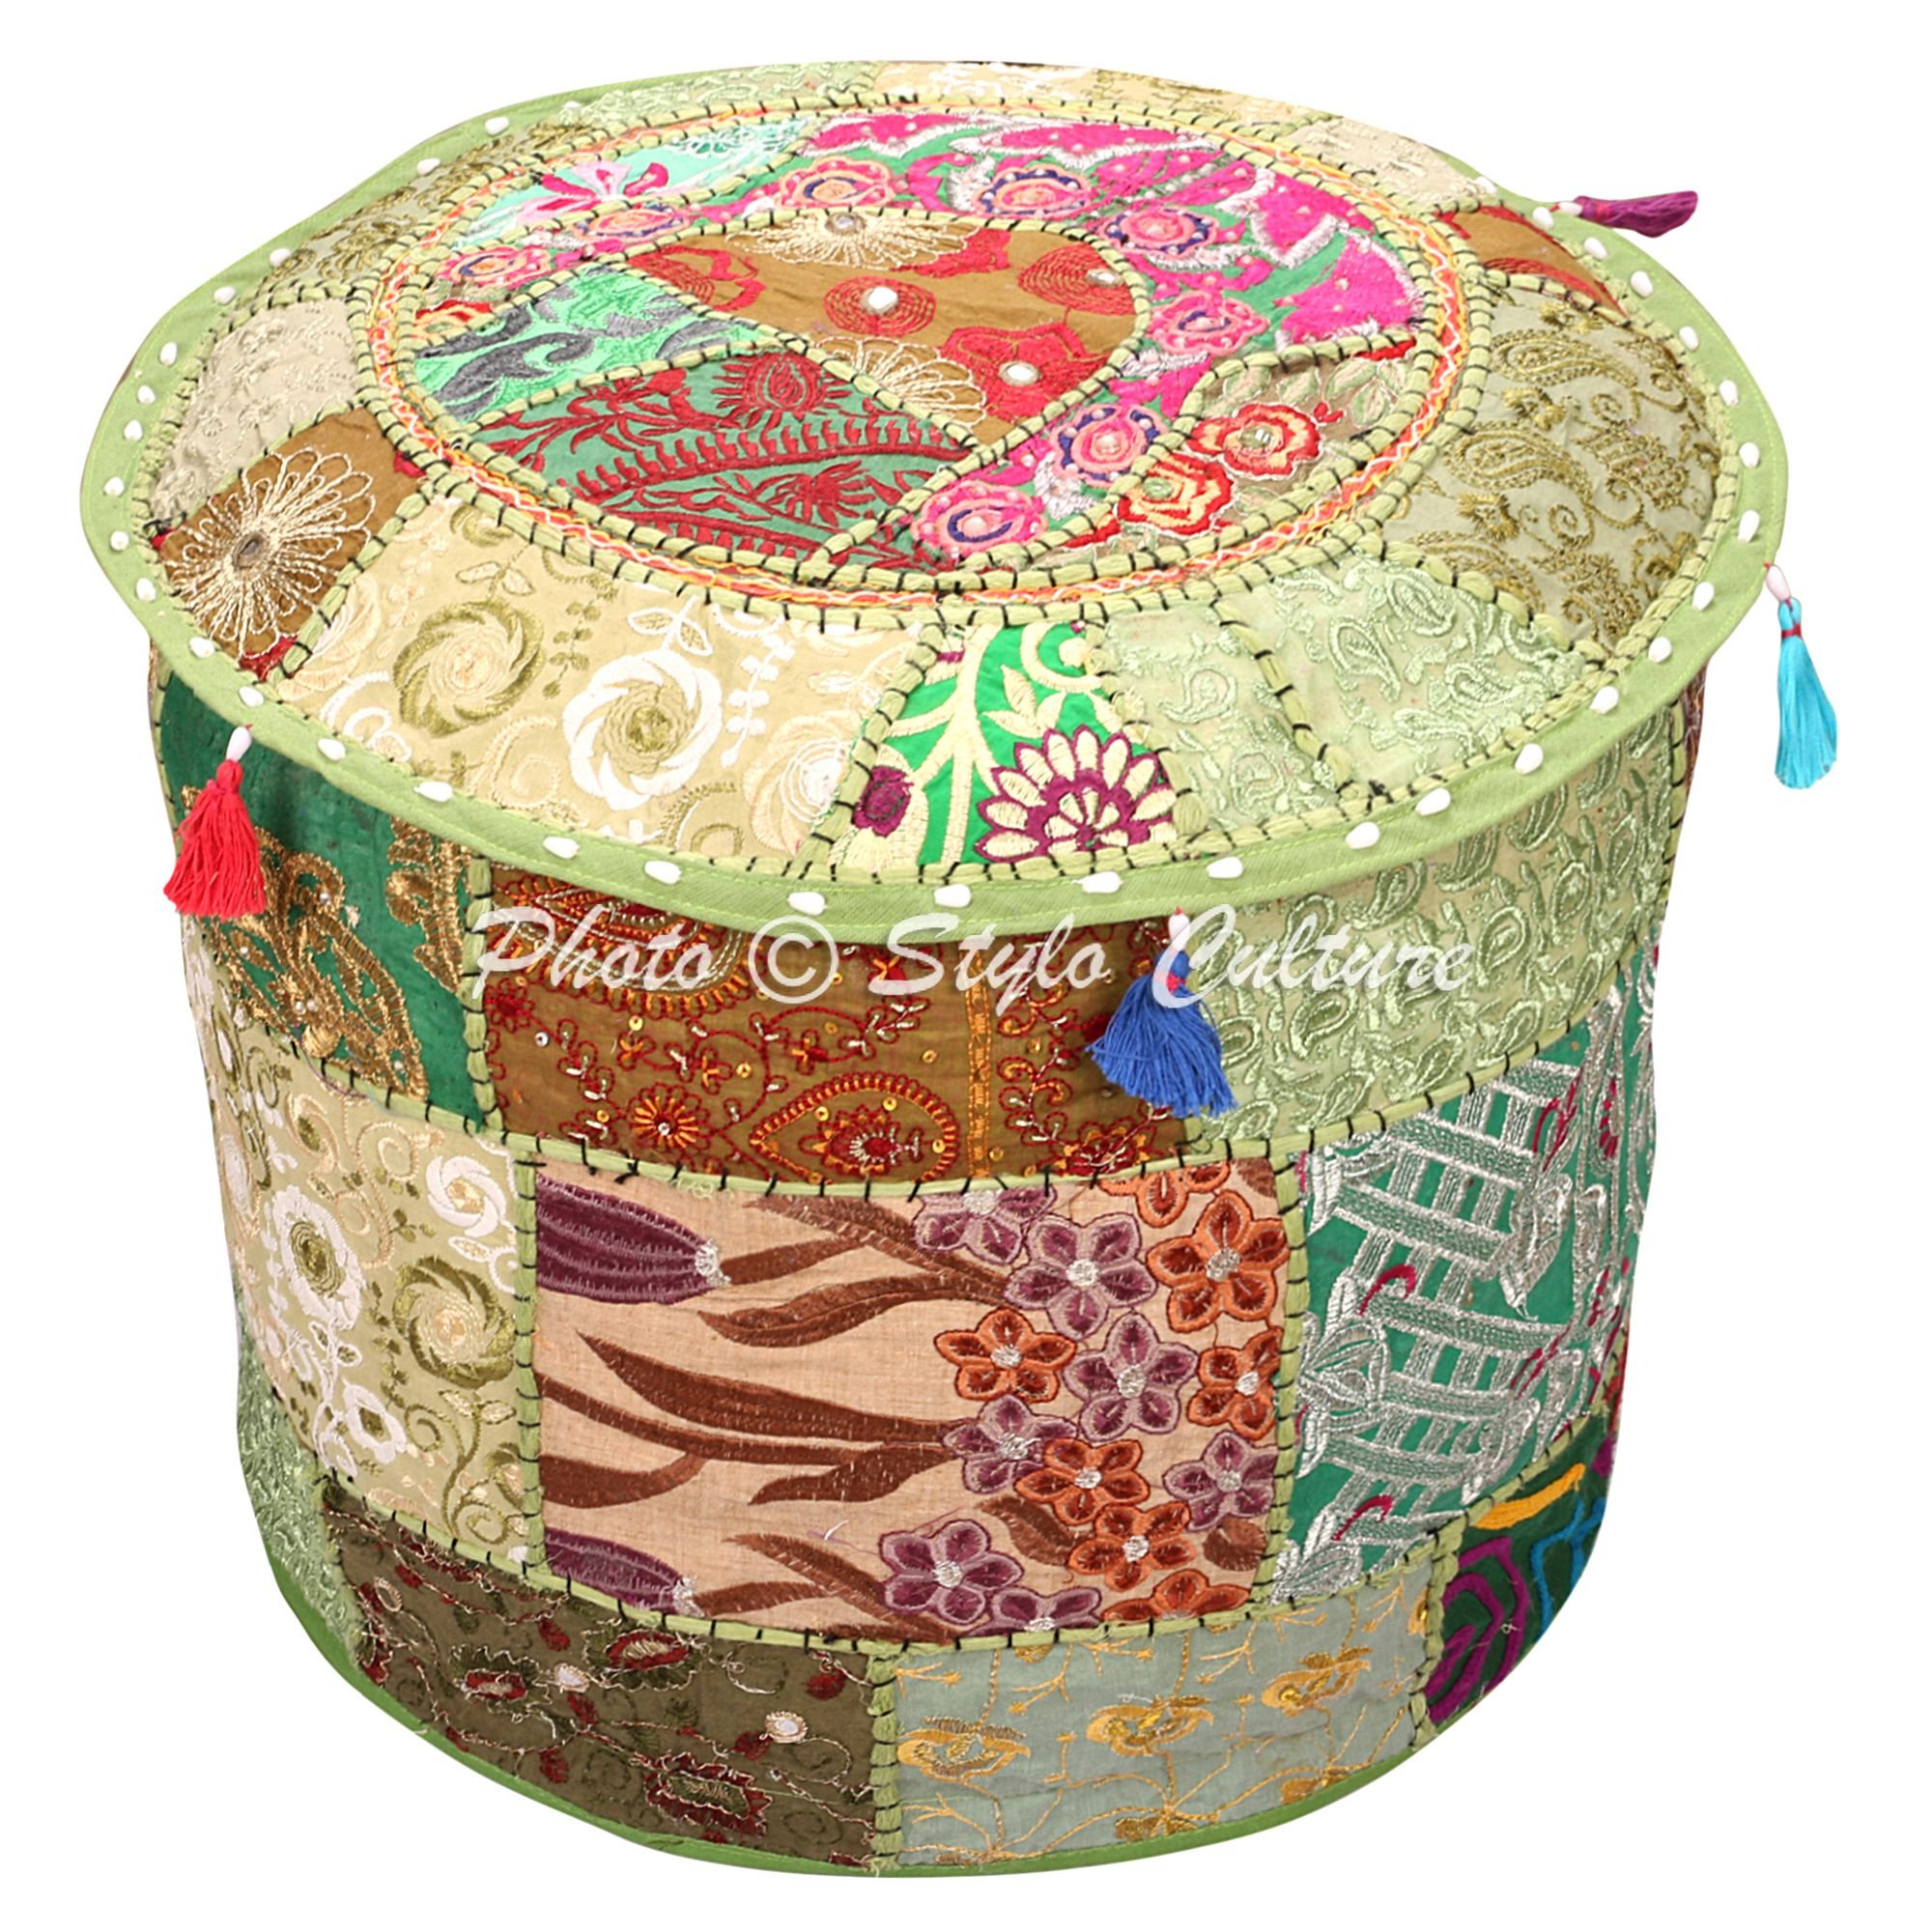 Stylo Culture Ethnic Bohemian Patchwork Pouf Cover Round Patchwork Embroidered Pouffe Ottoman Cover Green Cotton Floral Traditional Furniture Footstool Seat Puff Cover (16x16x13)